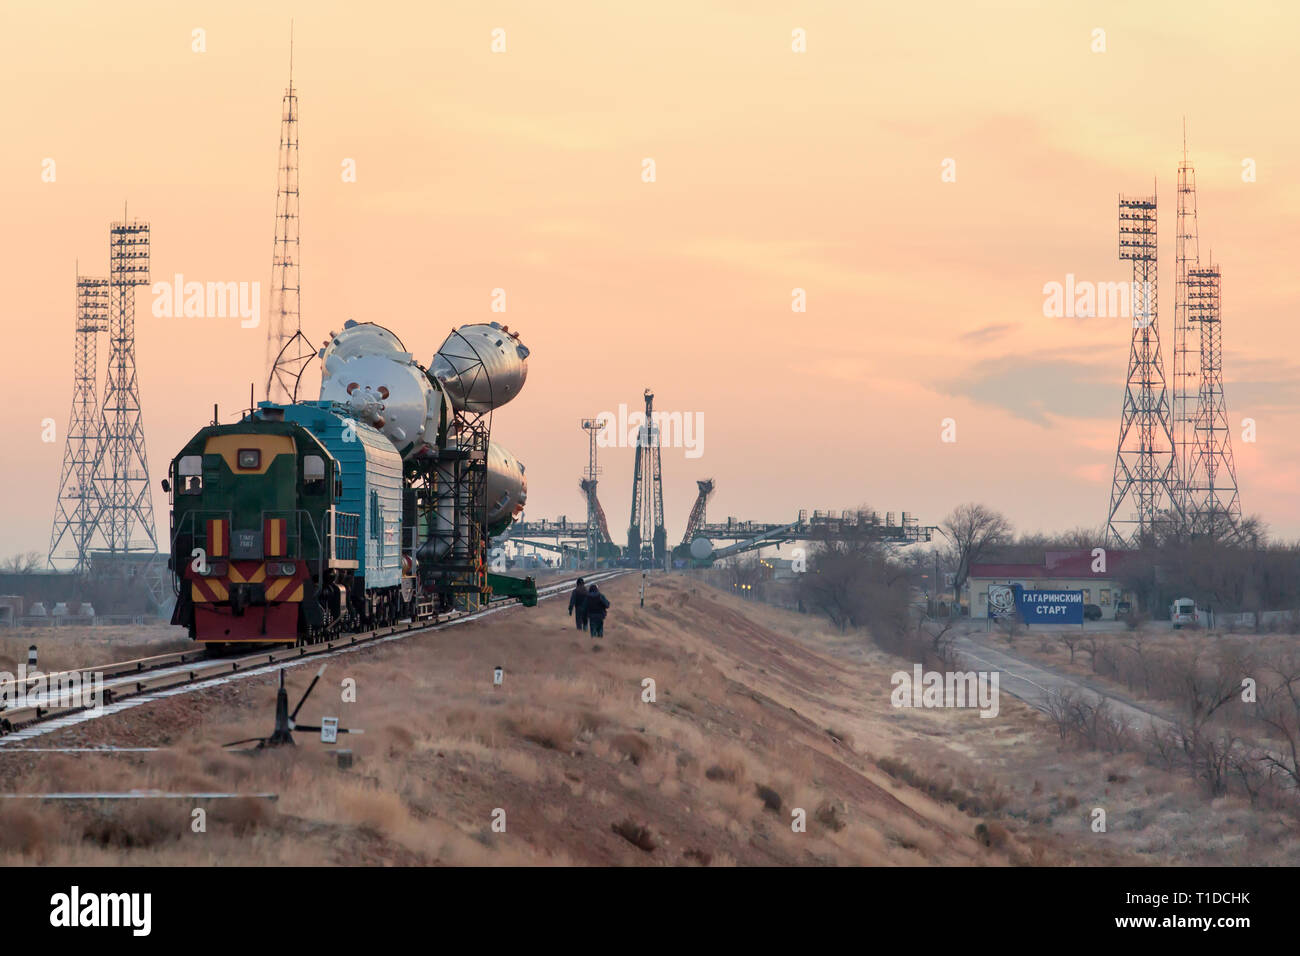 BAIKONUR - The Soyuz rocket MS-03 is beeing rolled out by train to the Gagarin Start launchpad on monday morning. - Stock Image